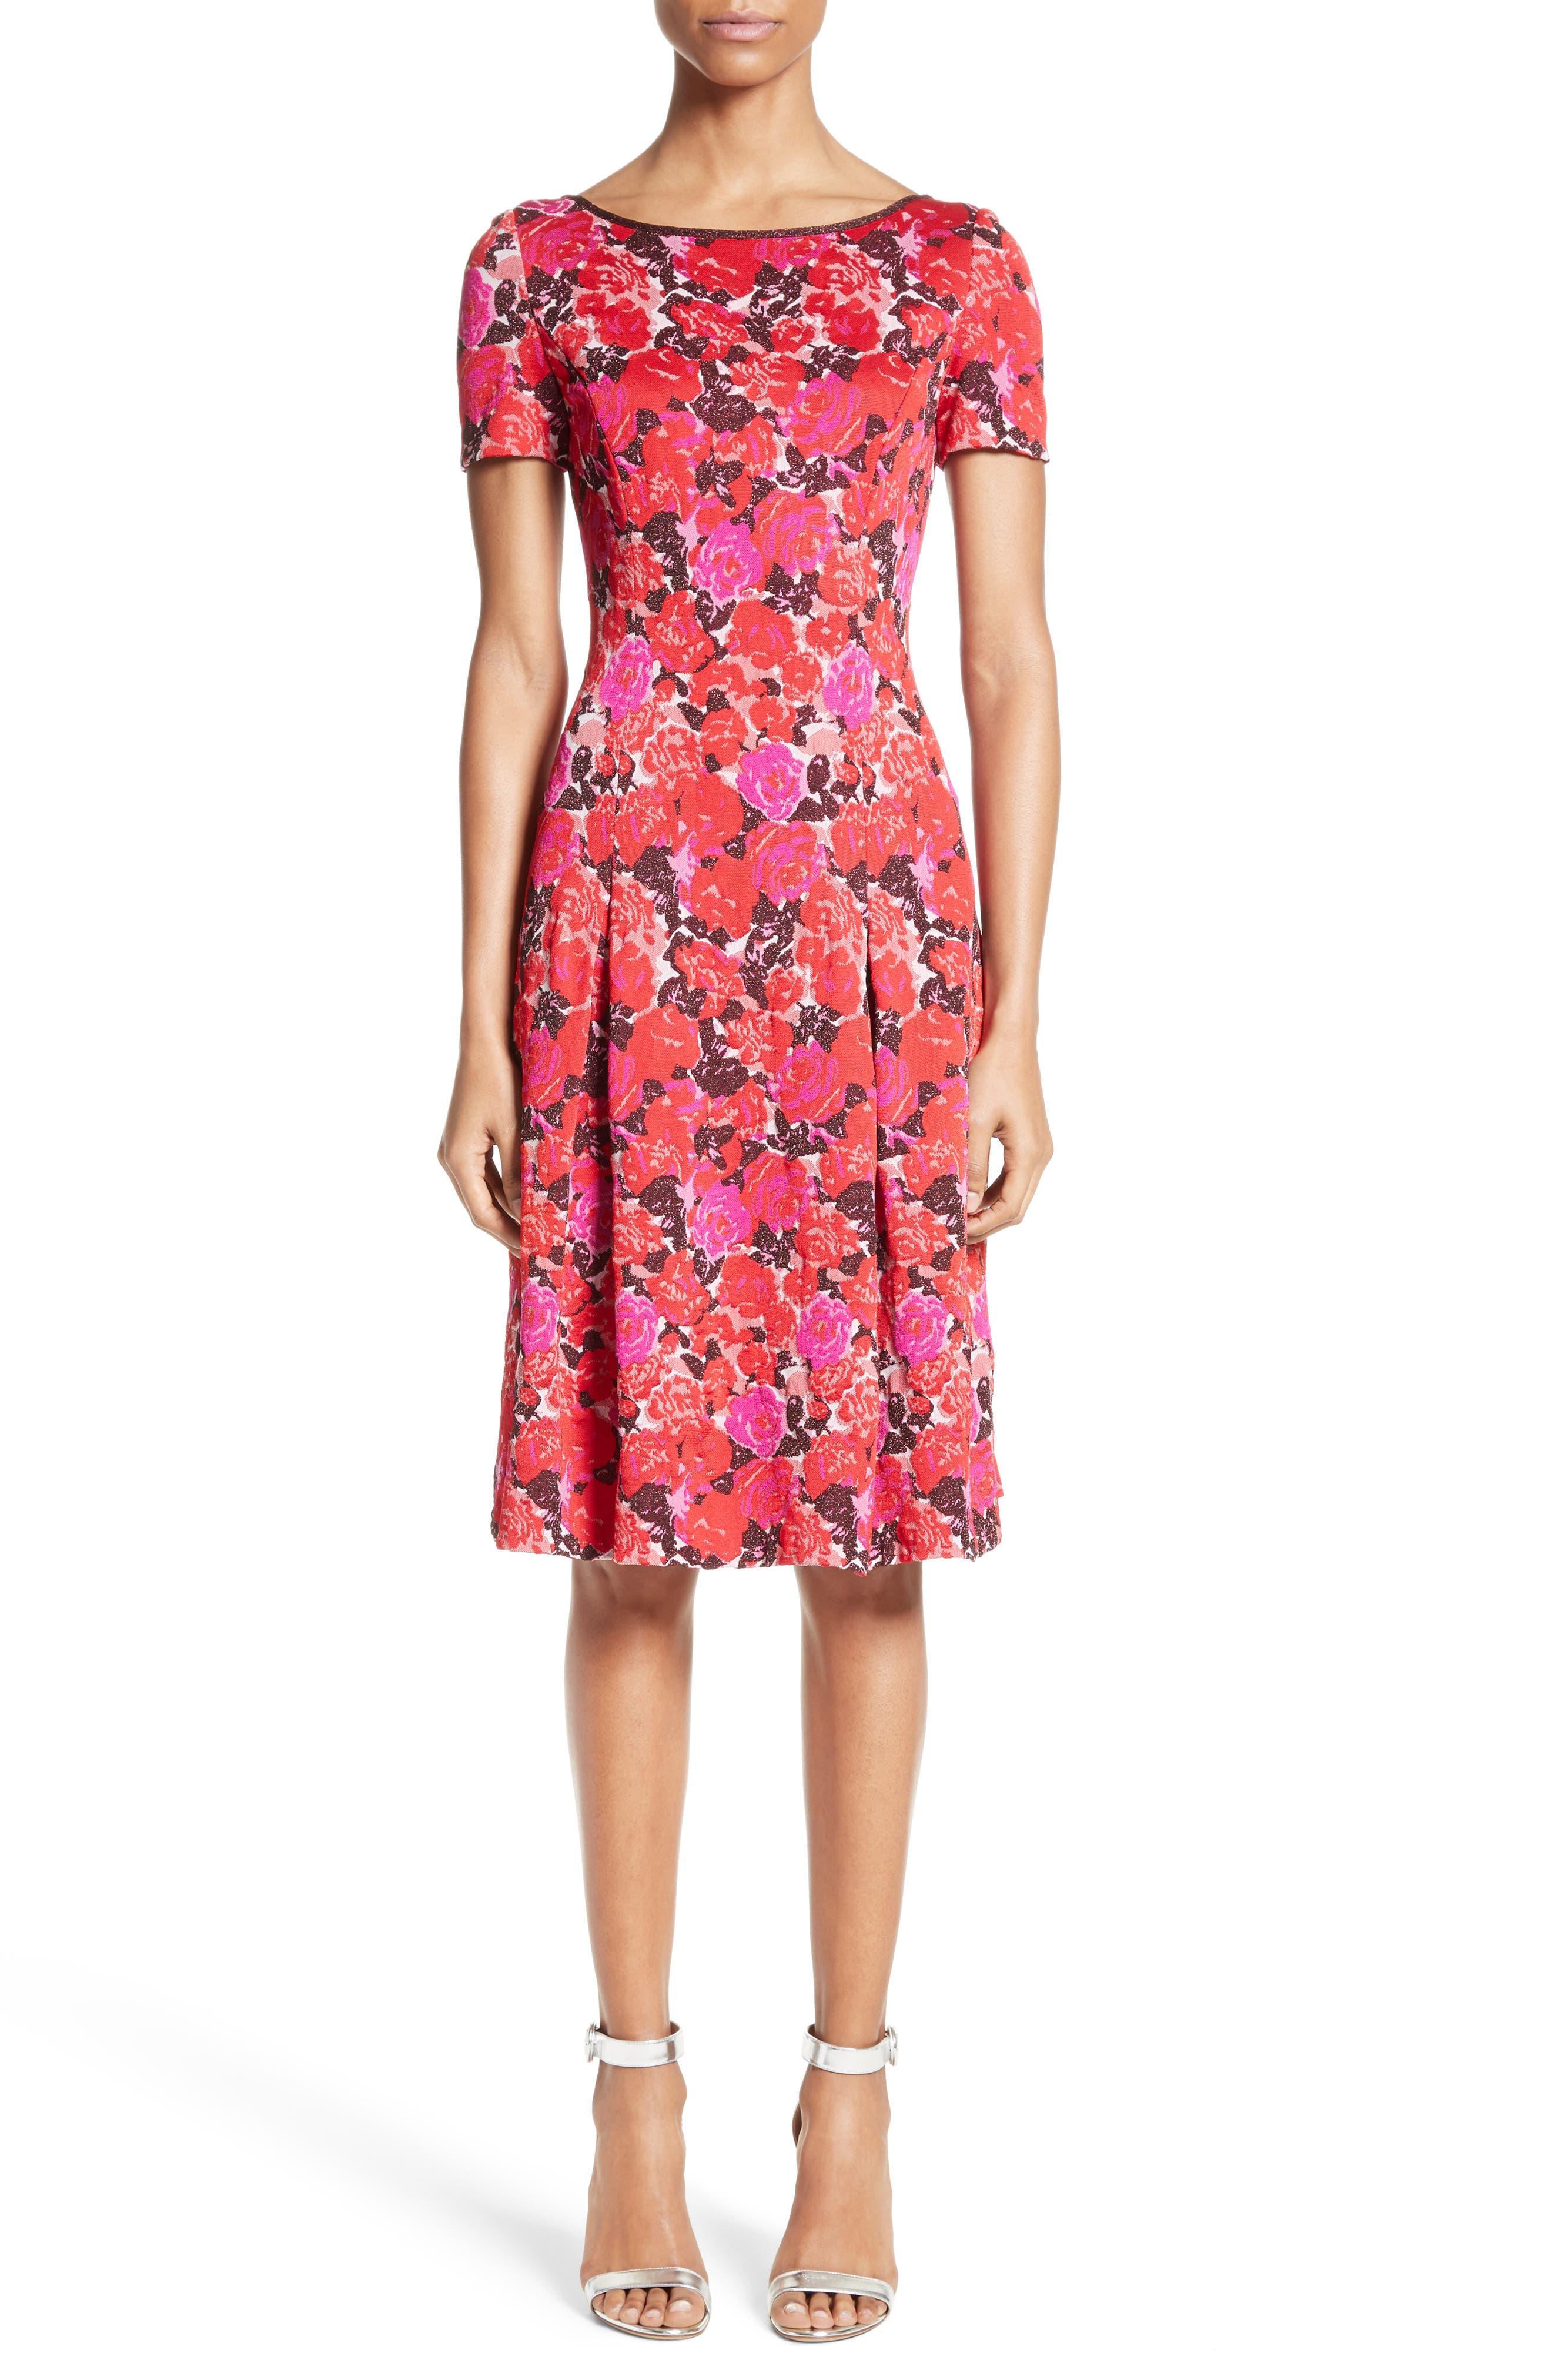 St. John Collection Indian Rose Blister Jacquard Dress